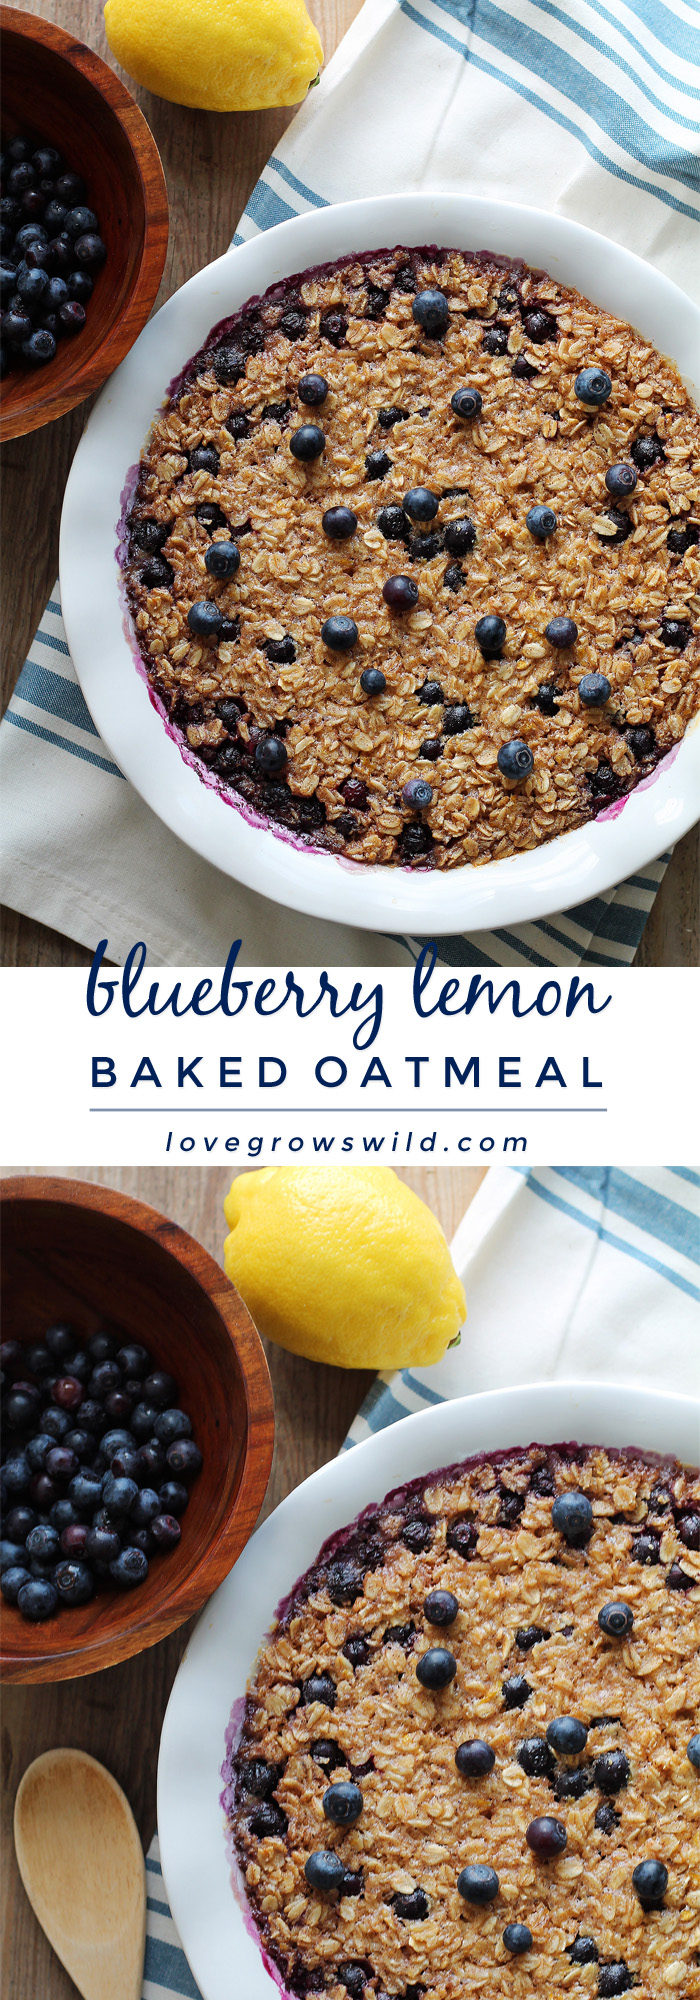 Start your morning off right with this blueberry lemon baked oatmeal! Easy to make and reheats beautifully so you can have a delicious, healthy breakfast all week long. | LoveGrowsWild.com